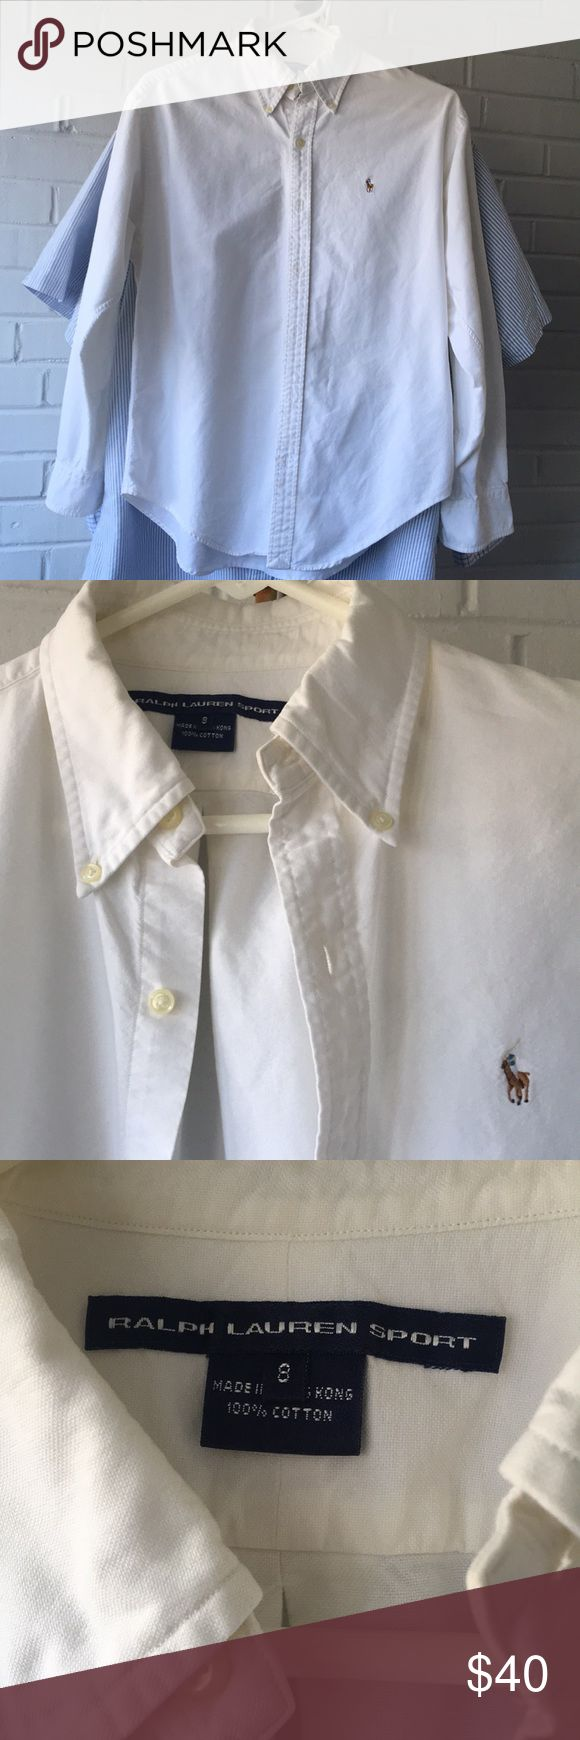 Ralph Lauren Polo Sport White Cotton Shirt Sz 8 Ladies Version of the RL classic Men's Yarmouth Button Down Shirt. Excellent like new Condition. Cleaned, Steamed, Crisp and ready for a new home. Polo by Ralph Lauren Tops Button Down Shirts